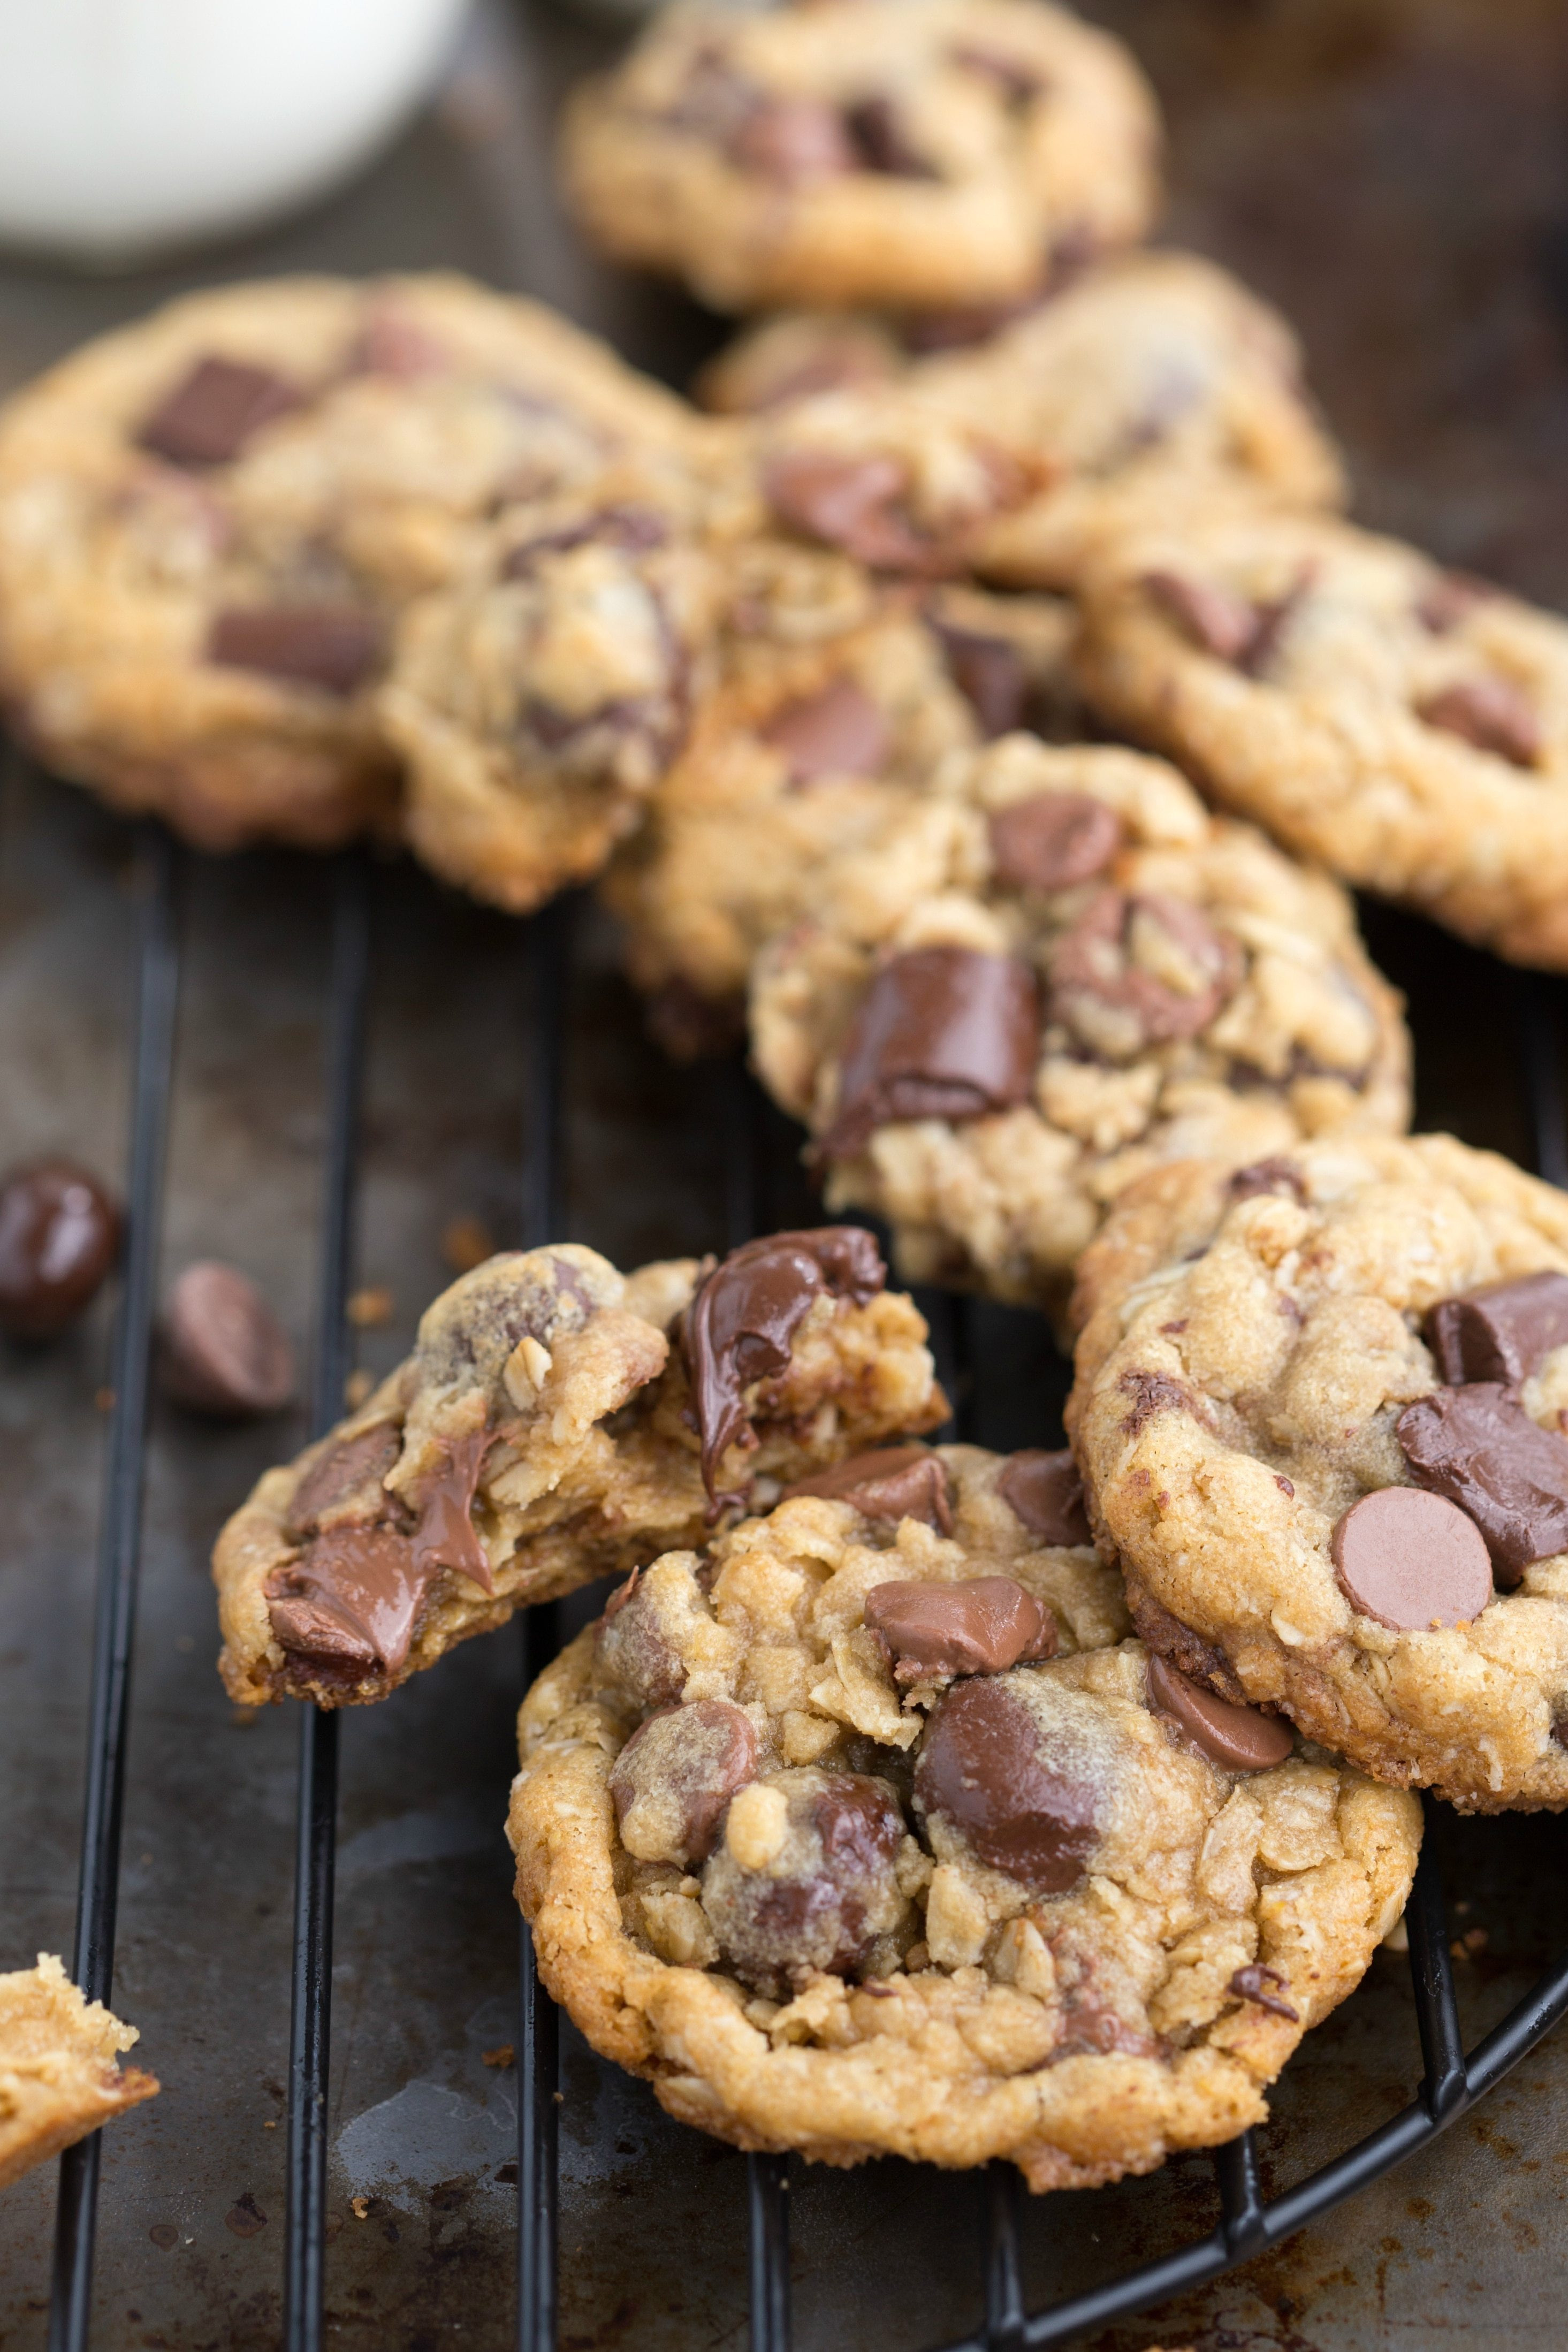 Oatmeal Chocolate Chip Cookies Healthy  Healthier Oatmeal Chocolate Chip Cookies with Dark